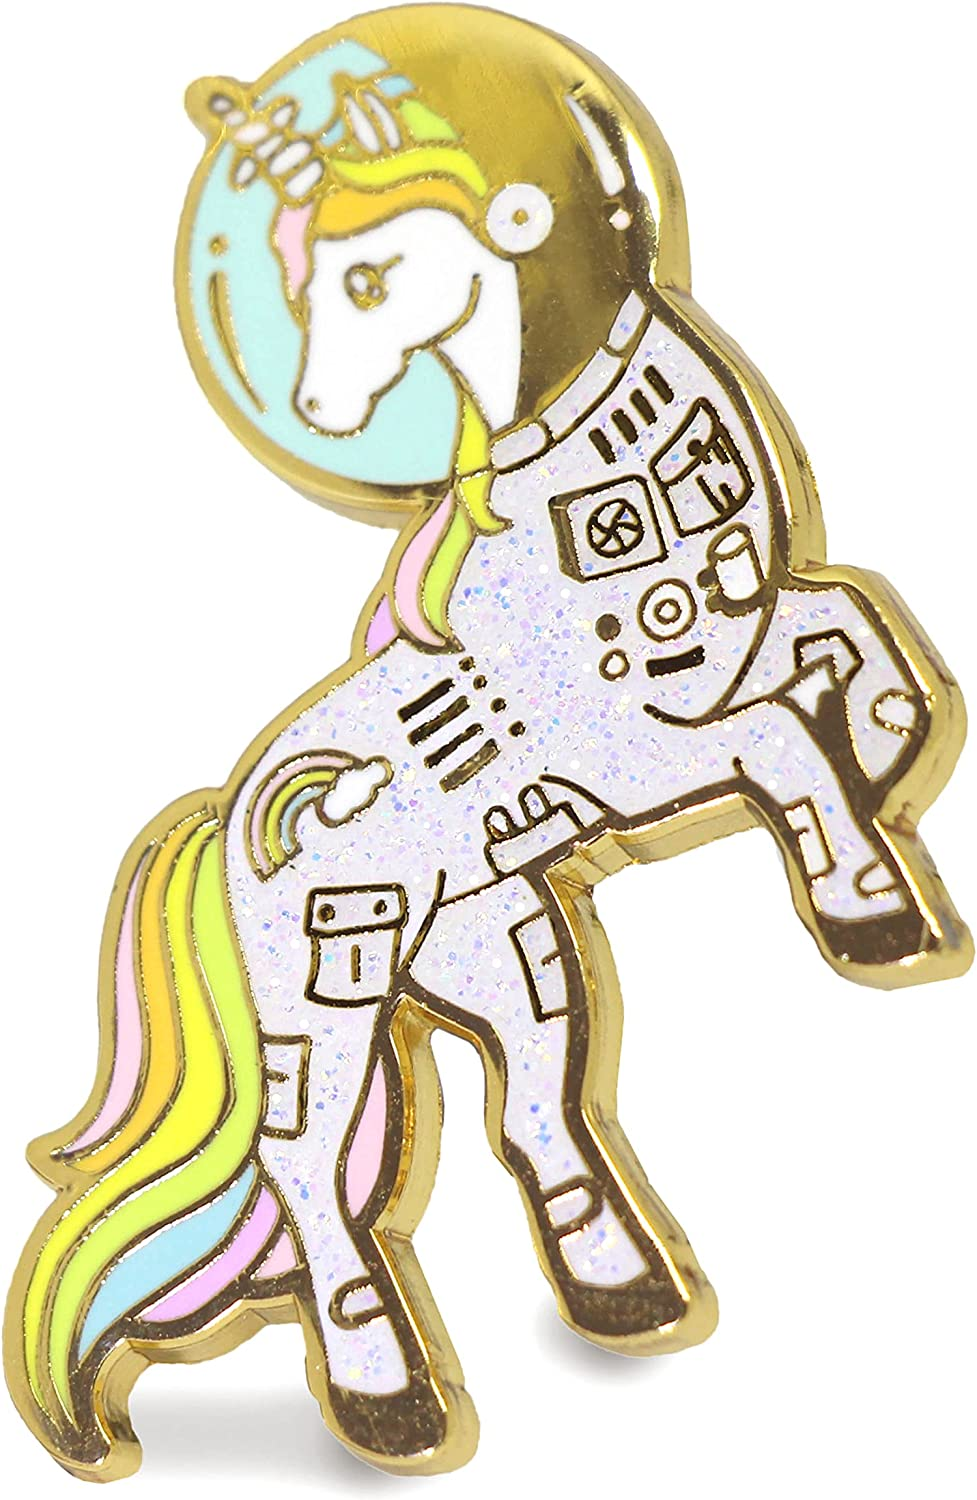 Unicorn Limited time for free shipping Enamel Pin Astronaut Space Colorful La In a Suit Discount mail order